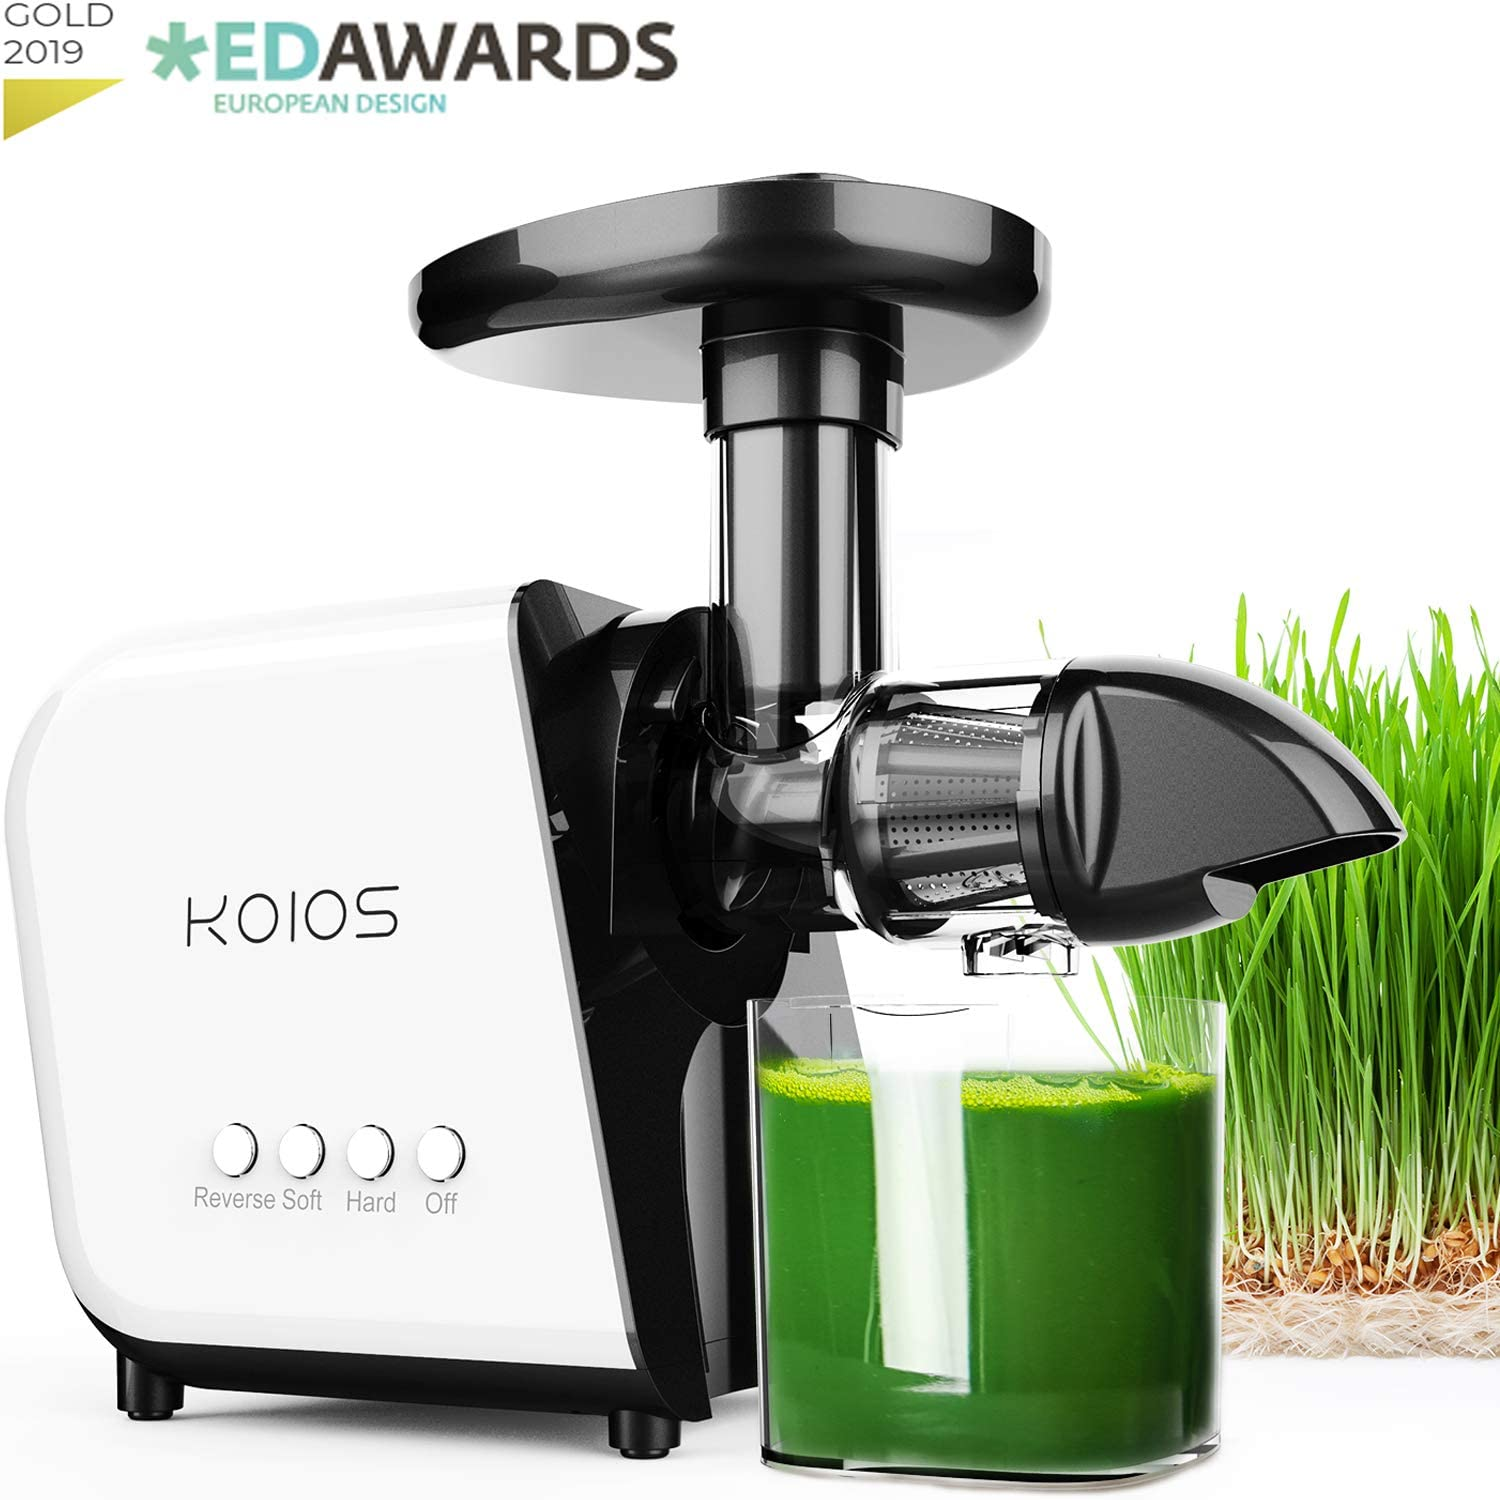 KOIOS Juicer, Slow Masticating Juicer Extractor 60 dB, Reverse Function 7 Level Longer Spiral System, BPA-Free, Cold Press Juicer Machines with Brush, Creates High Nutrient Fruit and Veggies Juice